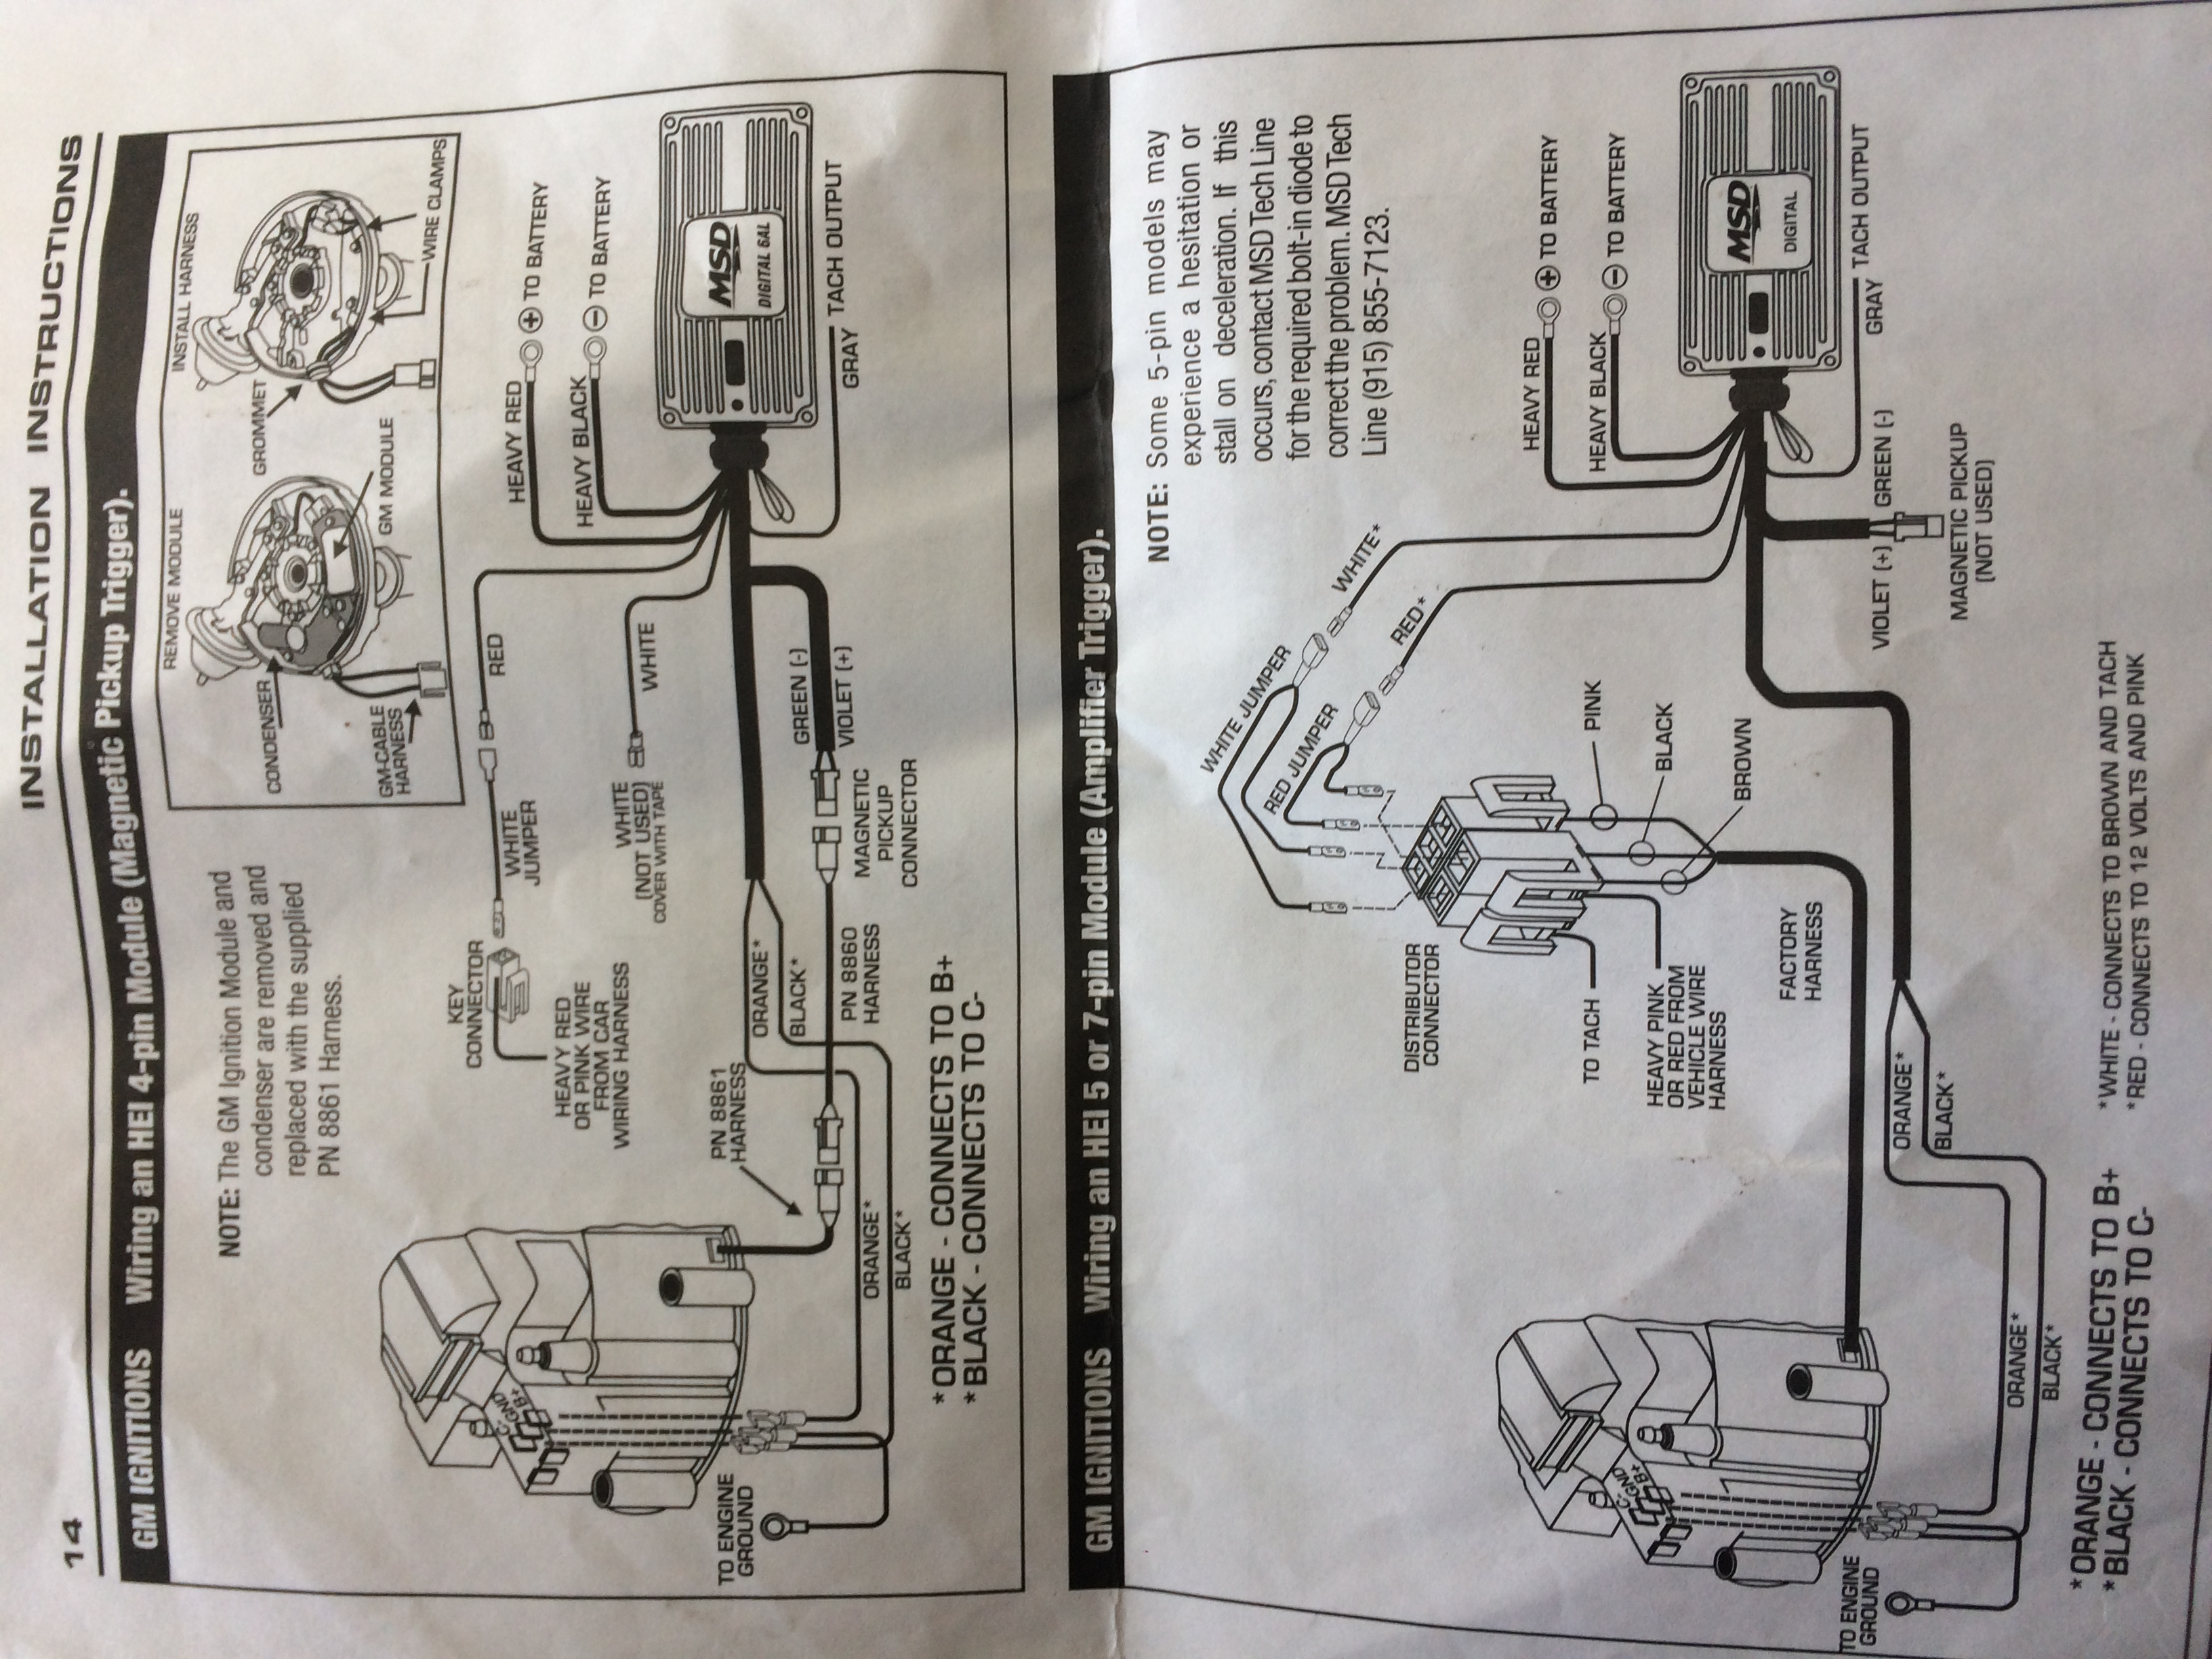 I Have Purchased A Msd 6al Ignition Unit And Fitted It To My 65 Magnetic Trigger Wiring Diagram Img 5070